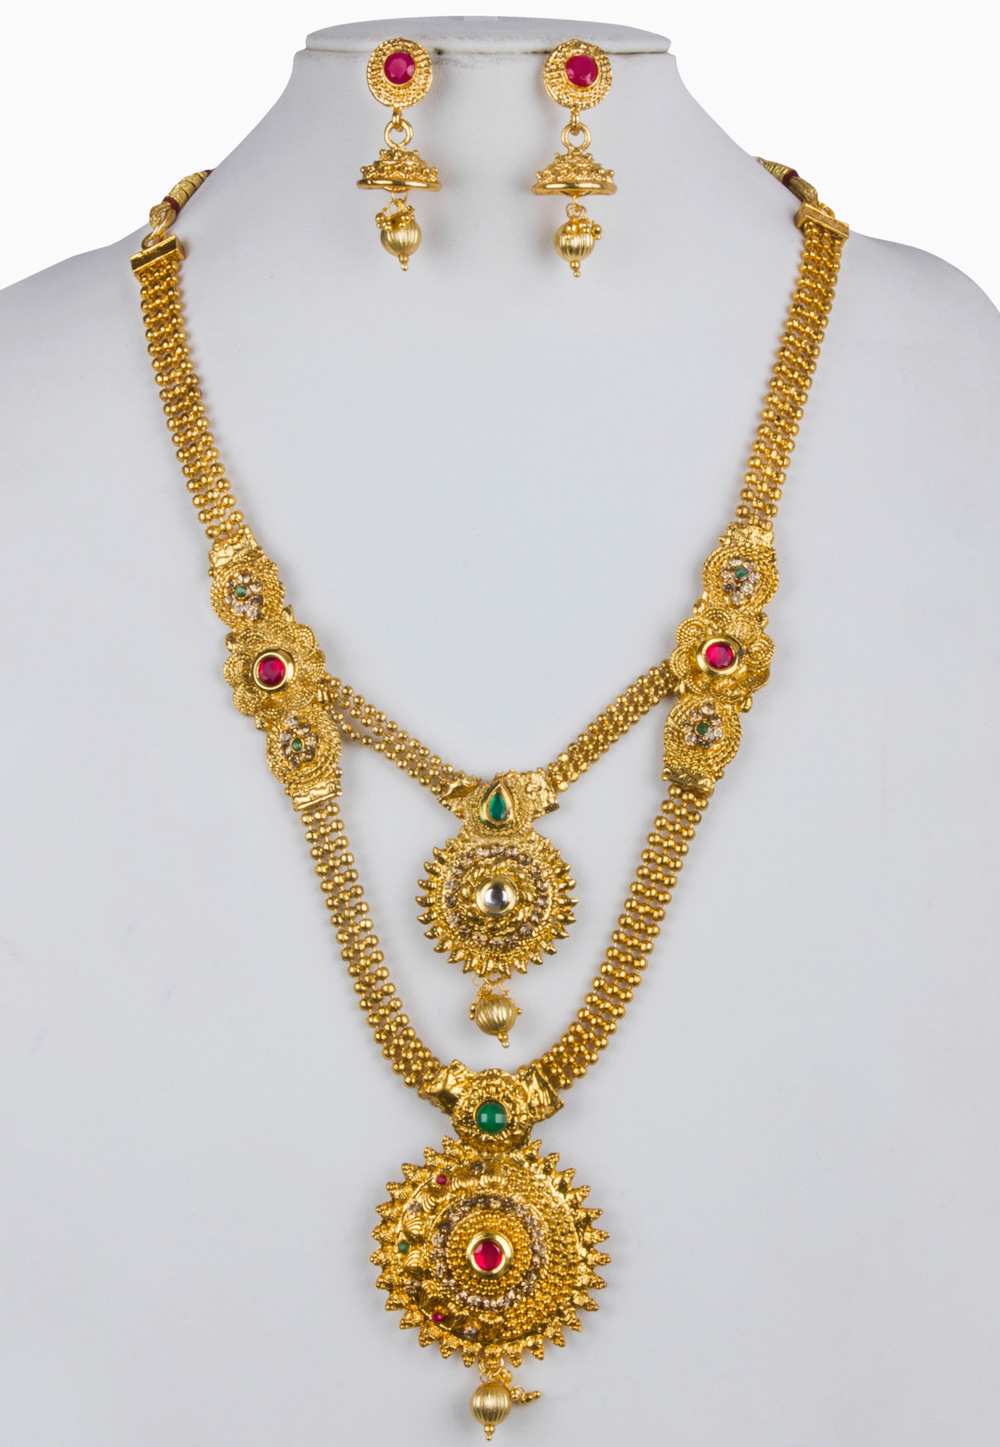 White Alloy Necklace With Earrings 157142